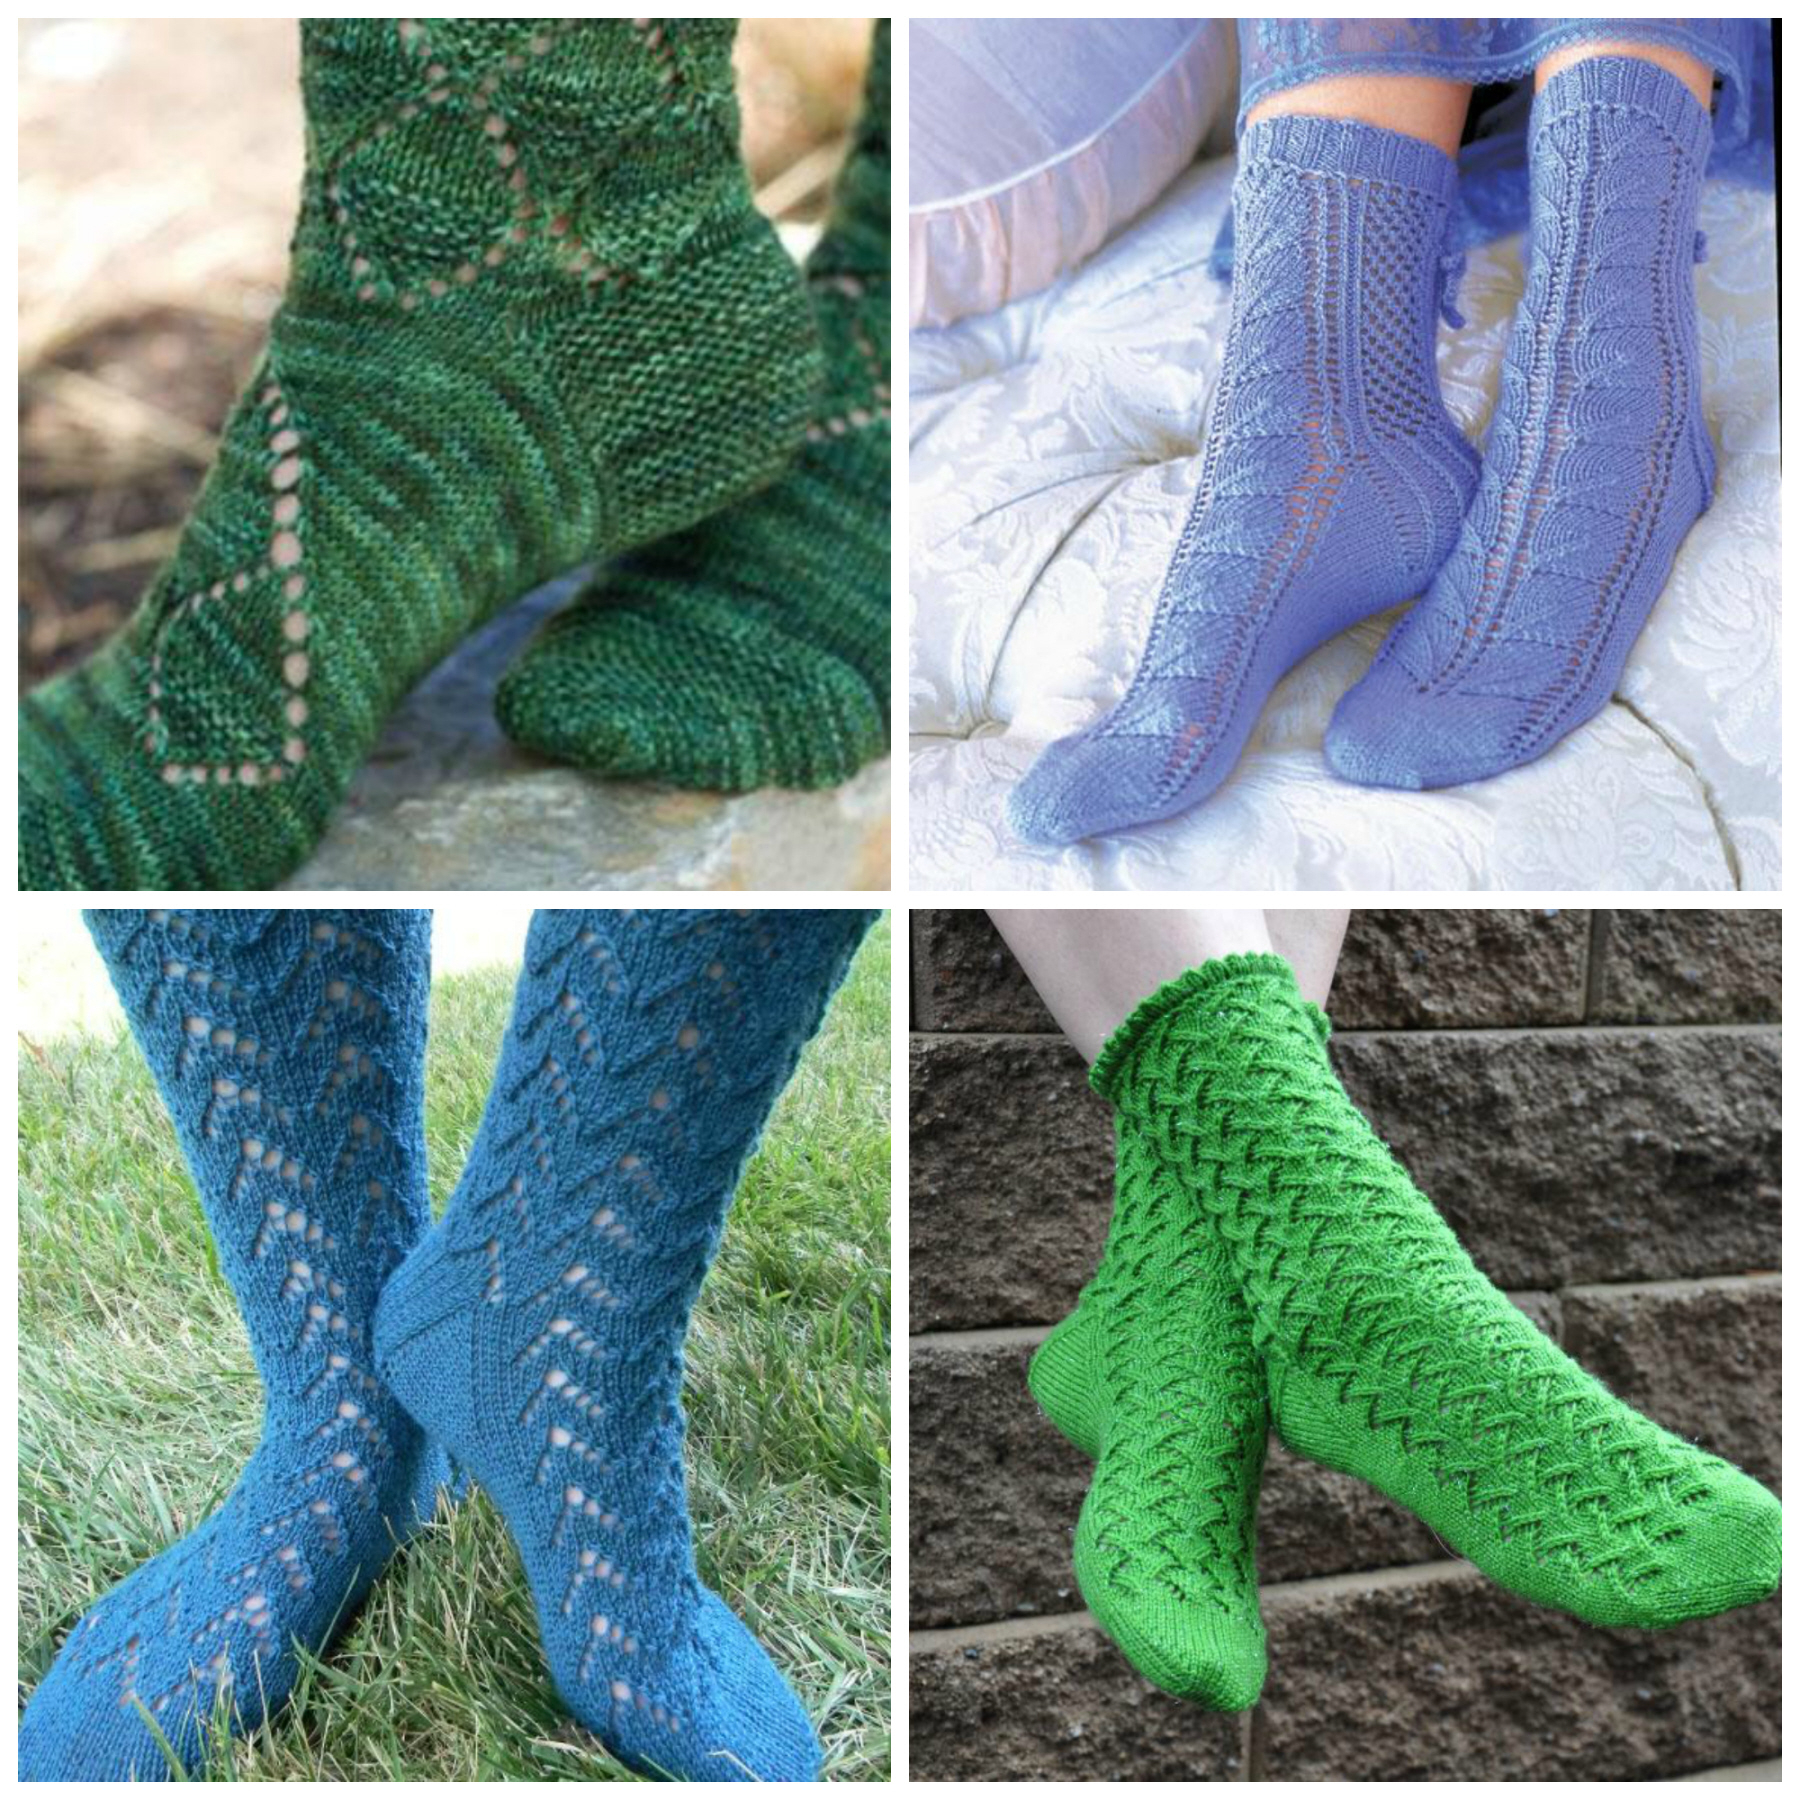 Knitting Patterns For Socks Lace Sock Patterns For Summer Knitting